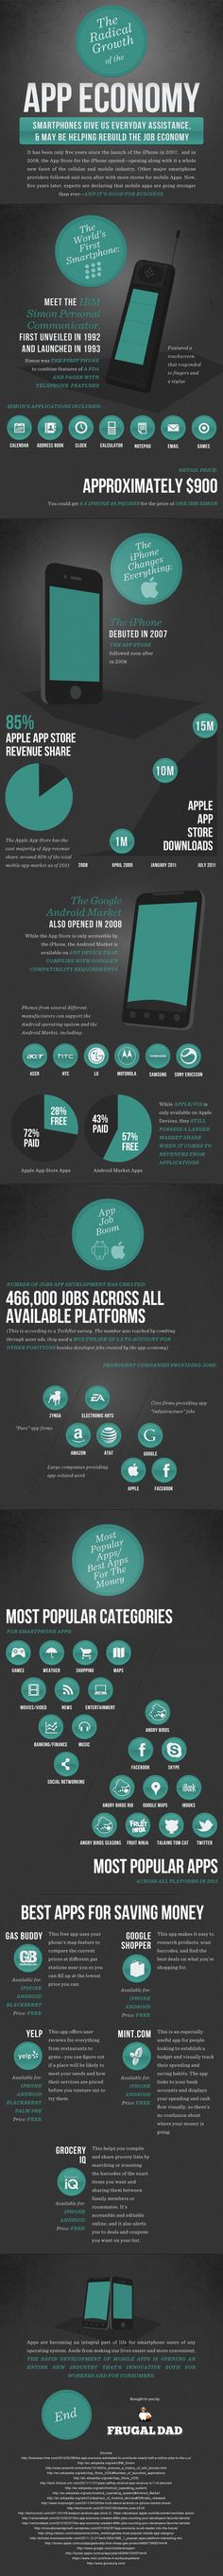 The Radical Growth of the App Economy #infographic #infografia